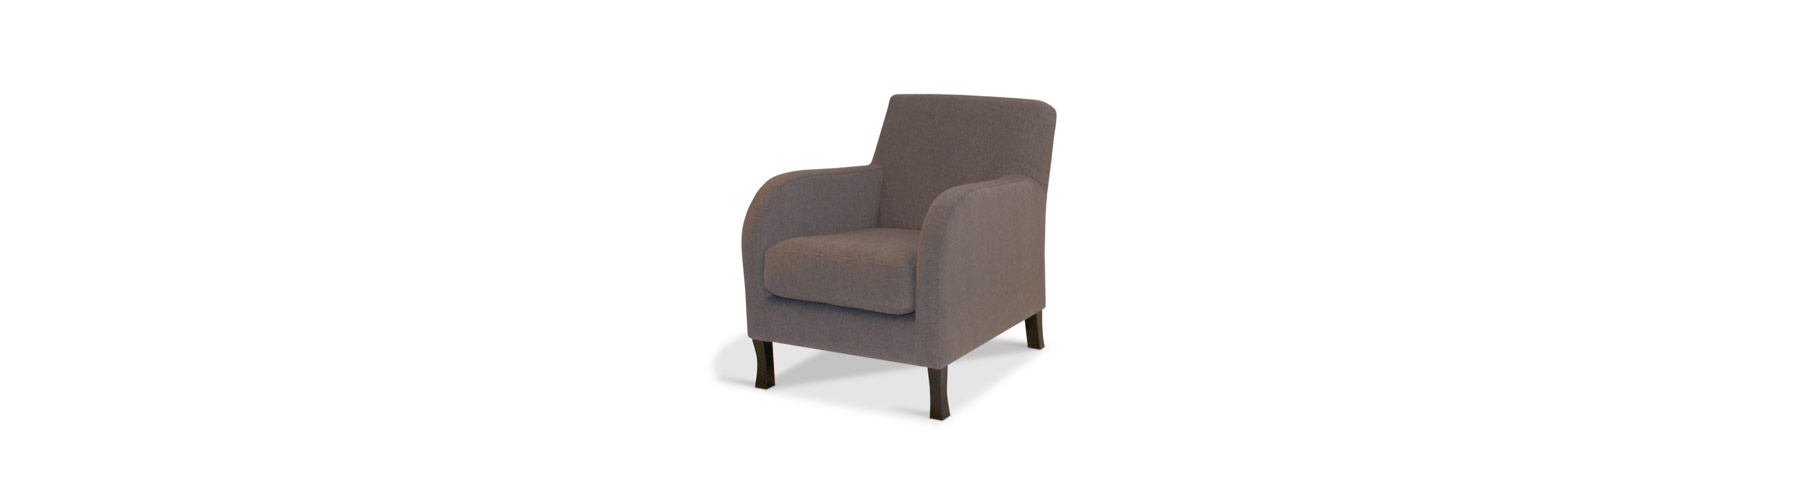 Sorento - Fauteuil William